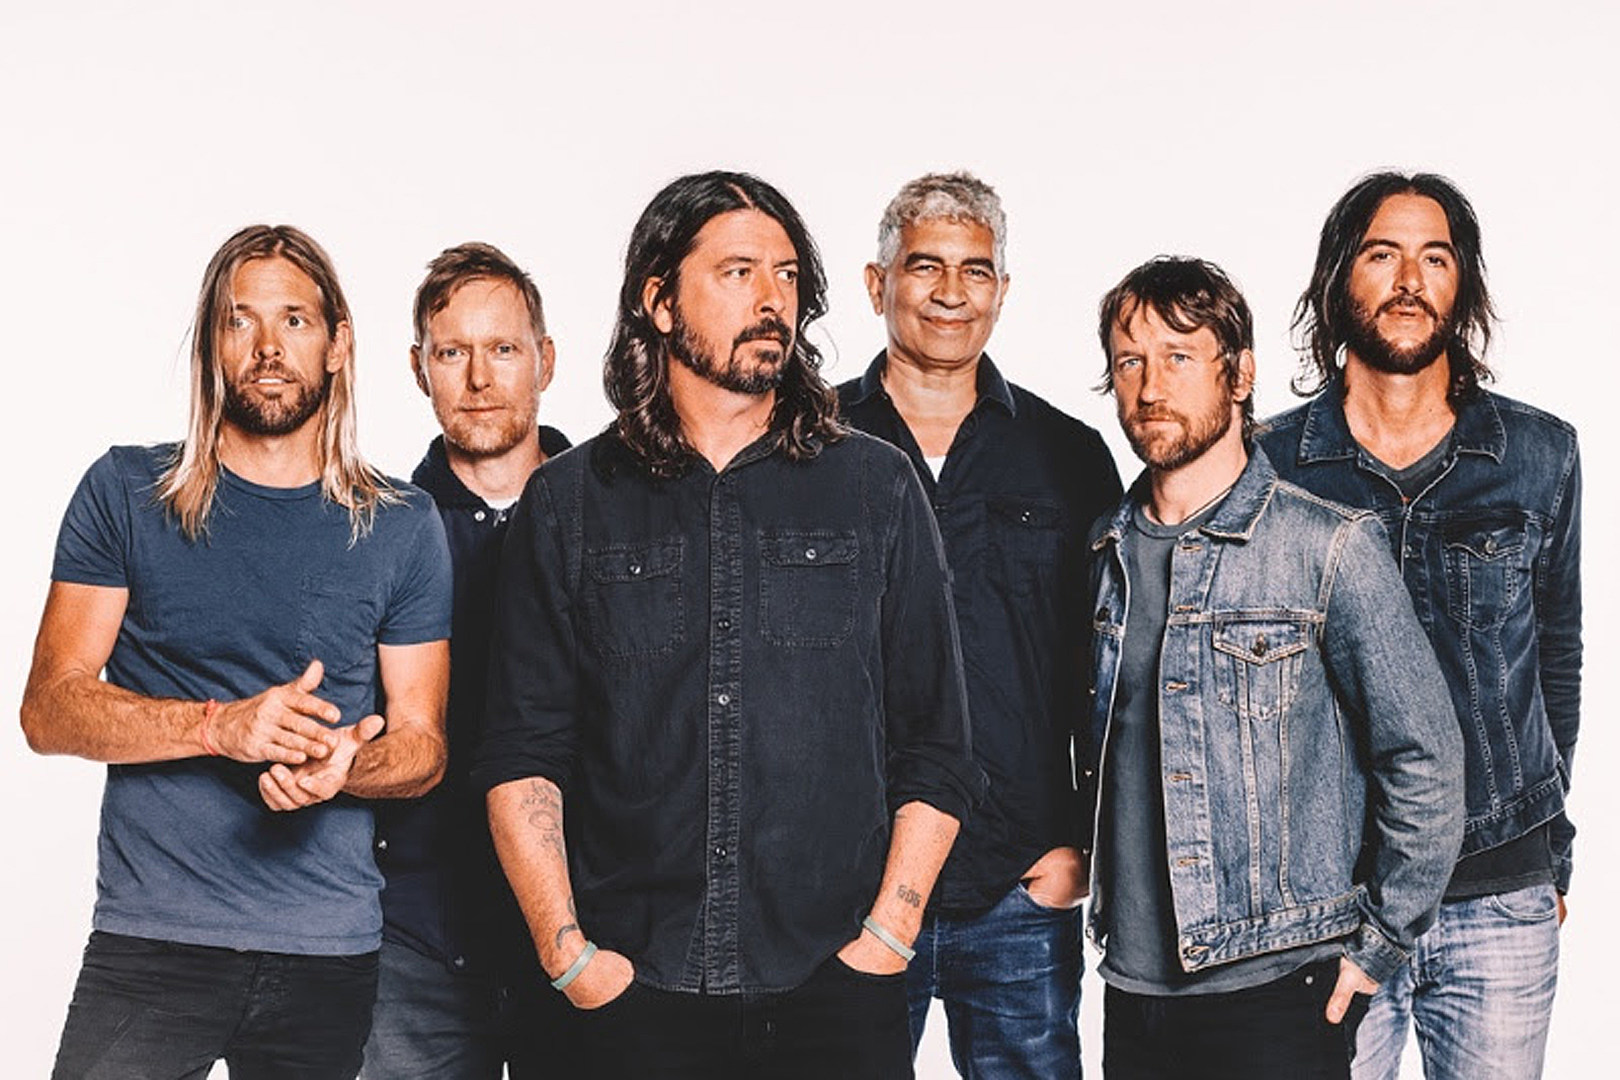 Foo Fighters' Dave Grohl Teases 'Seriously Crazy Sh-t' for 2020